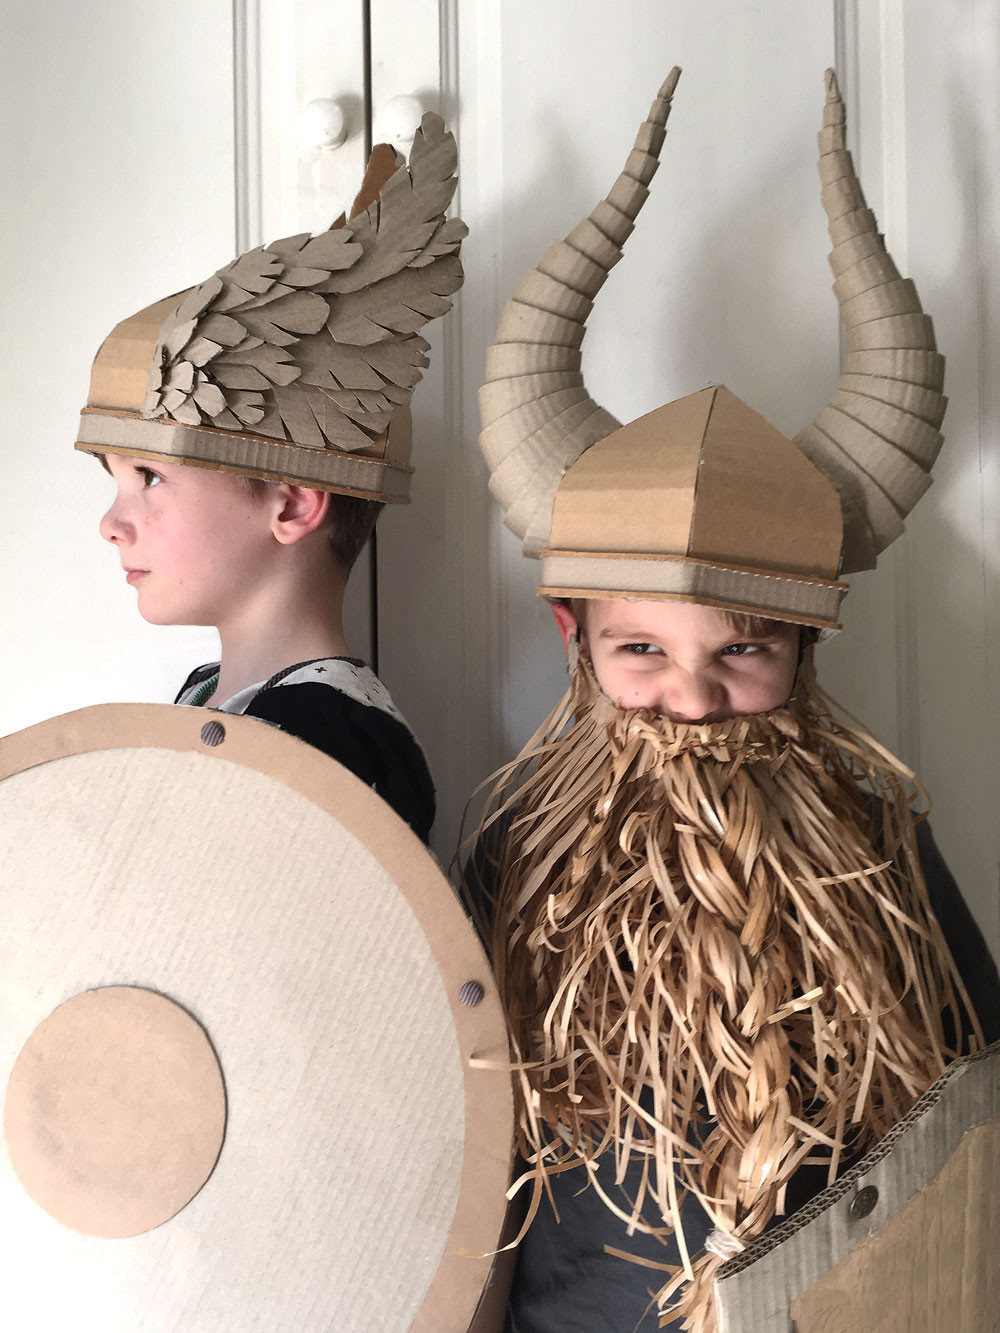 DIY Cardboard Costume Viking Helmet with Horns wings and horns